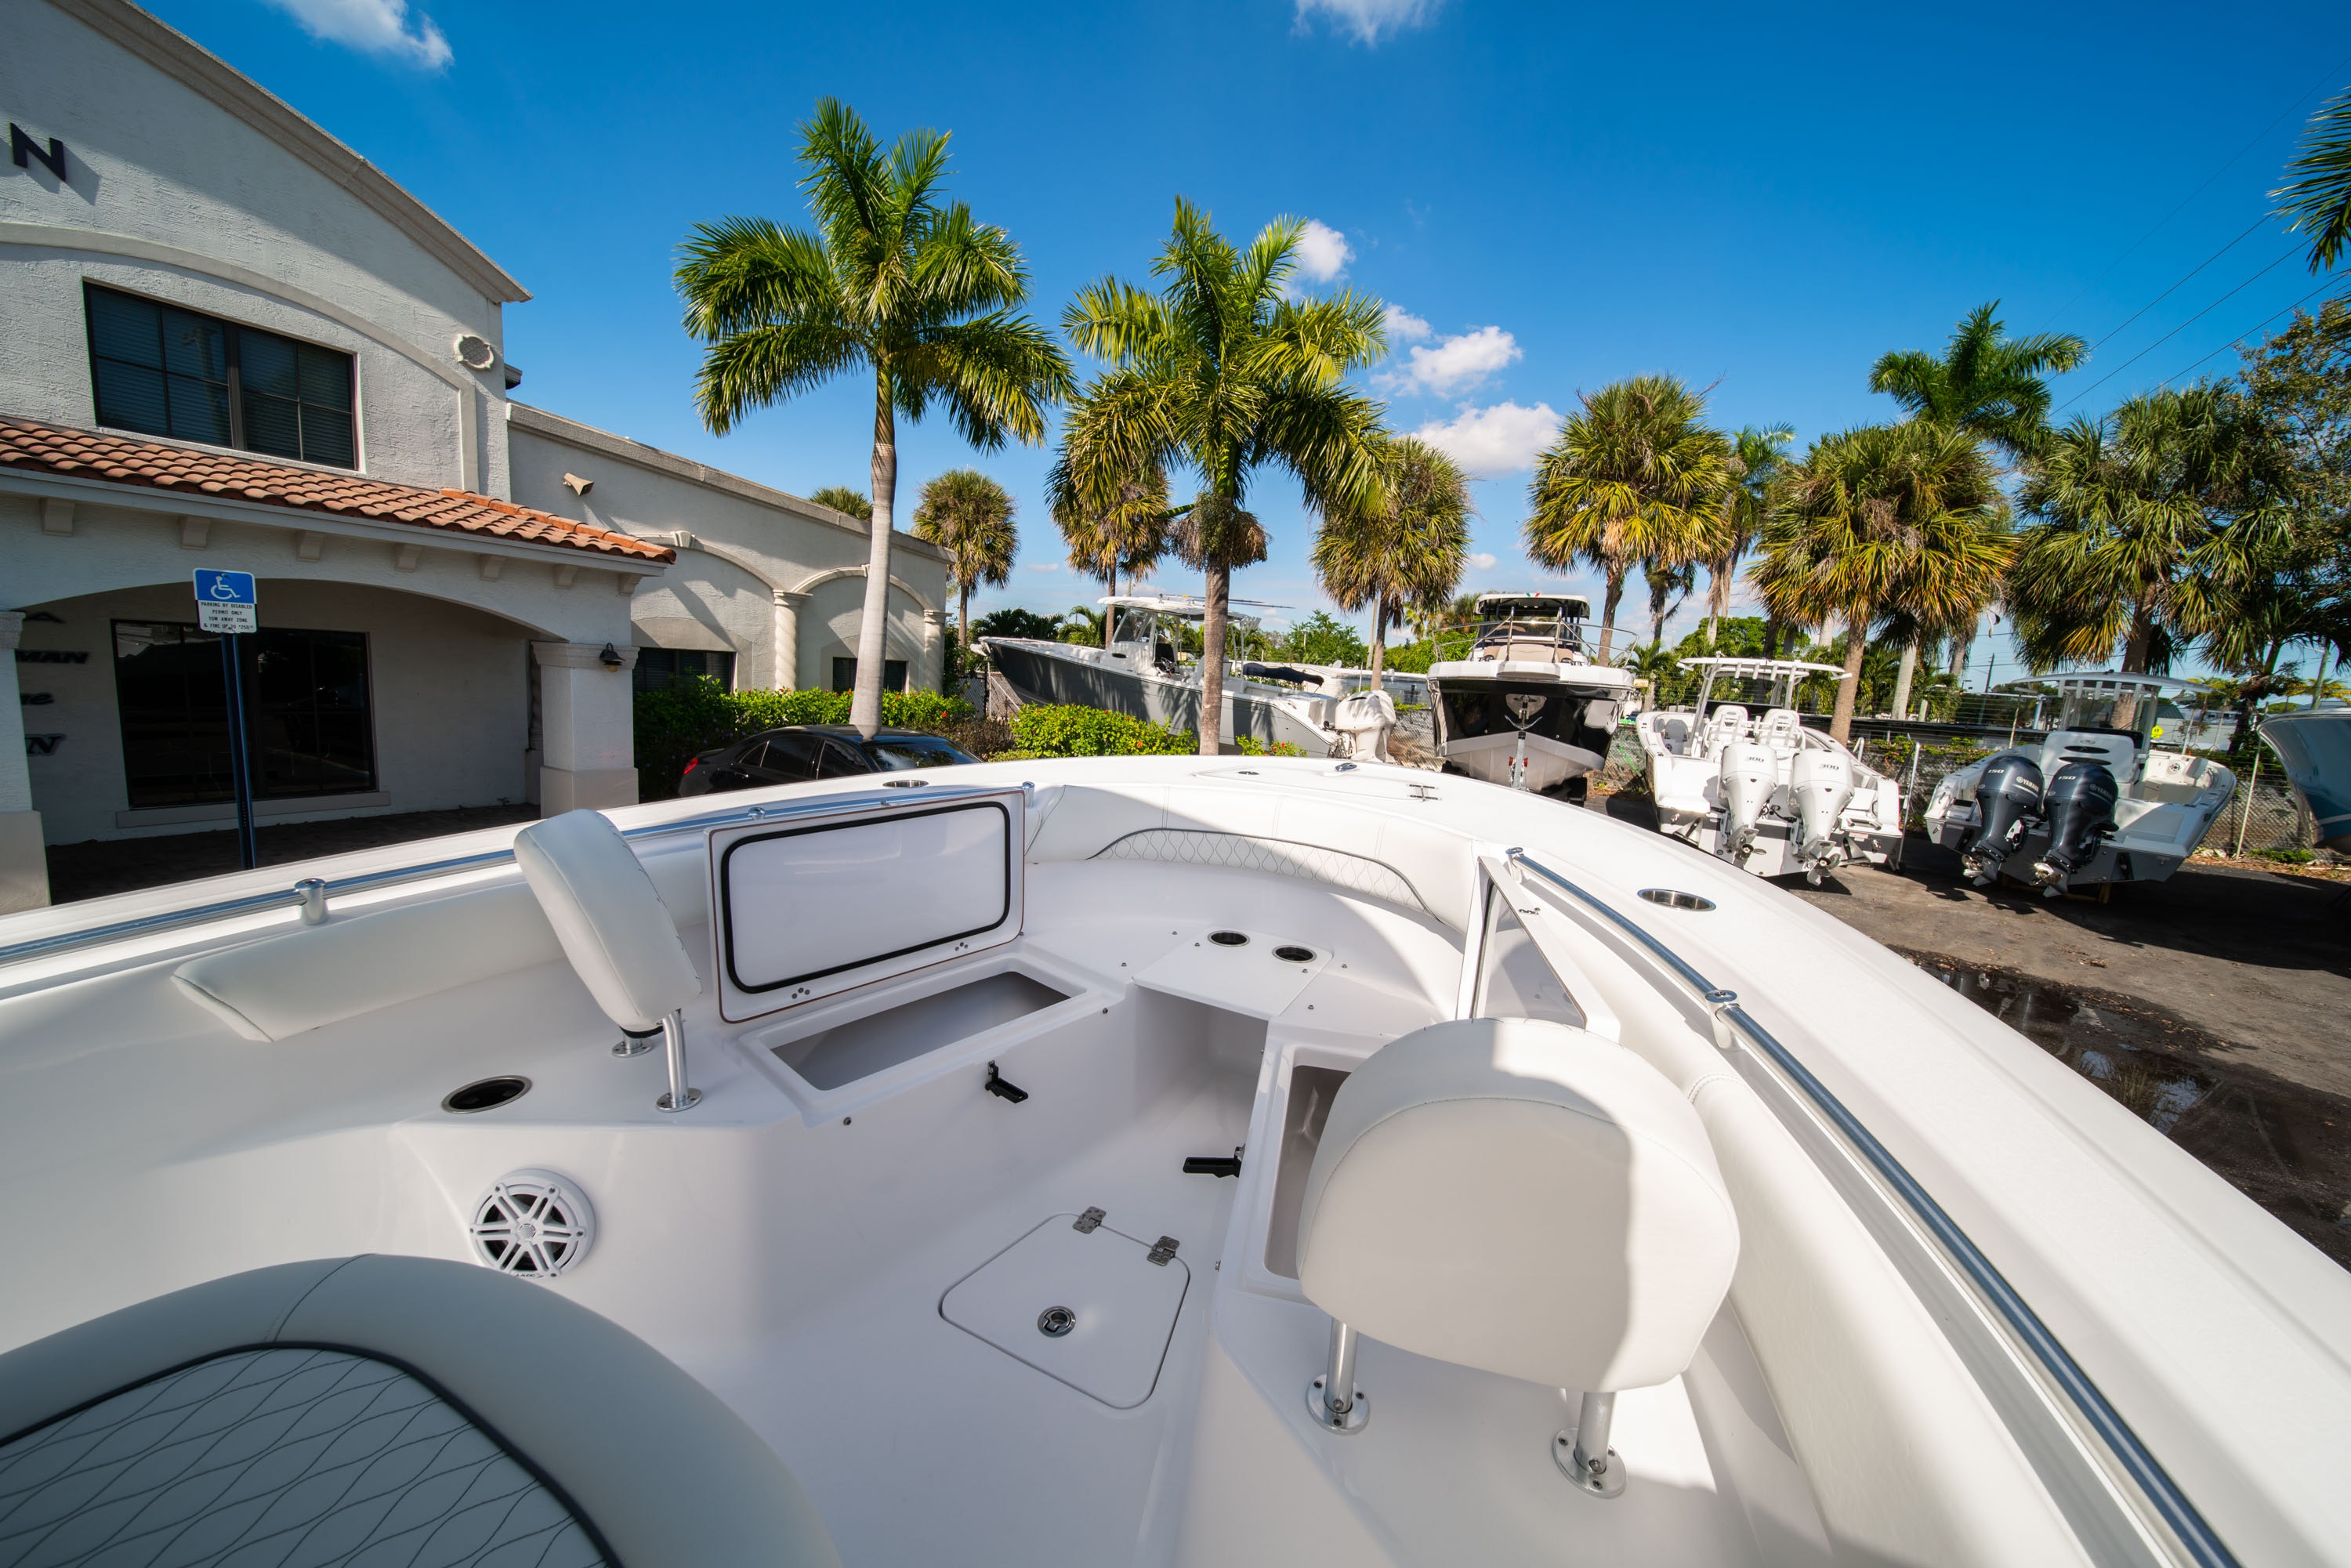 Thumbnail 32 for New 2020 Sportsman Open 212 Center Console boat for sale in West Palm Beach, FL